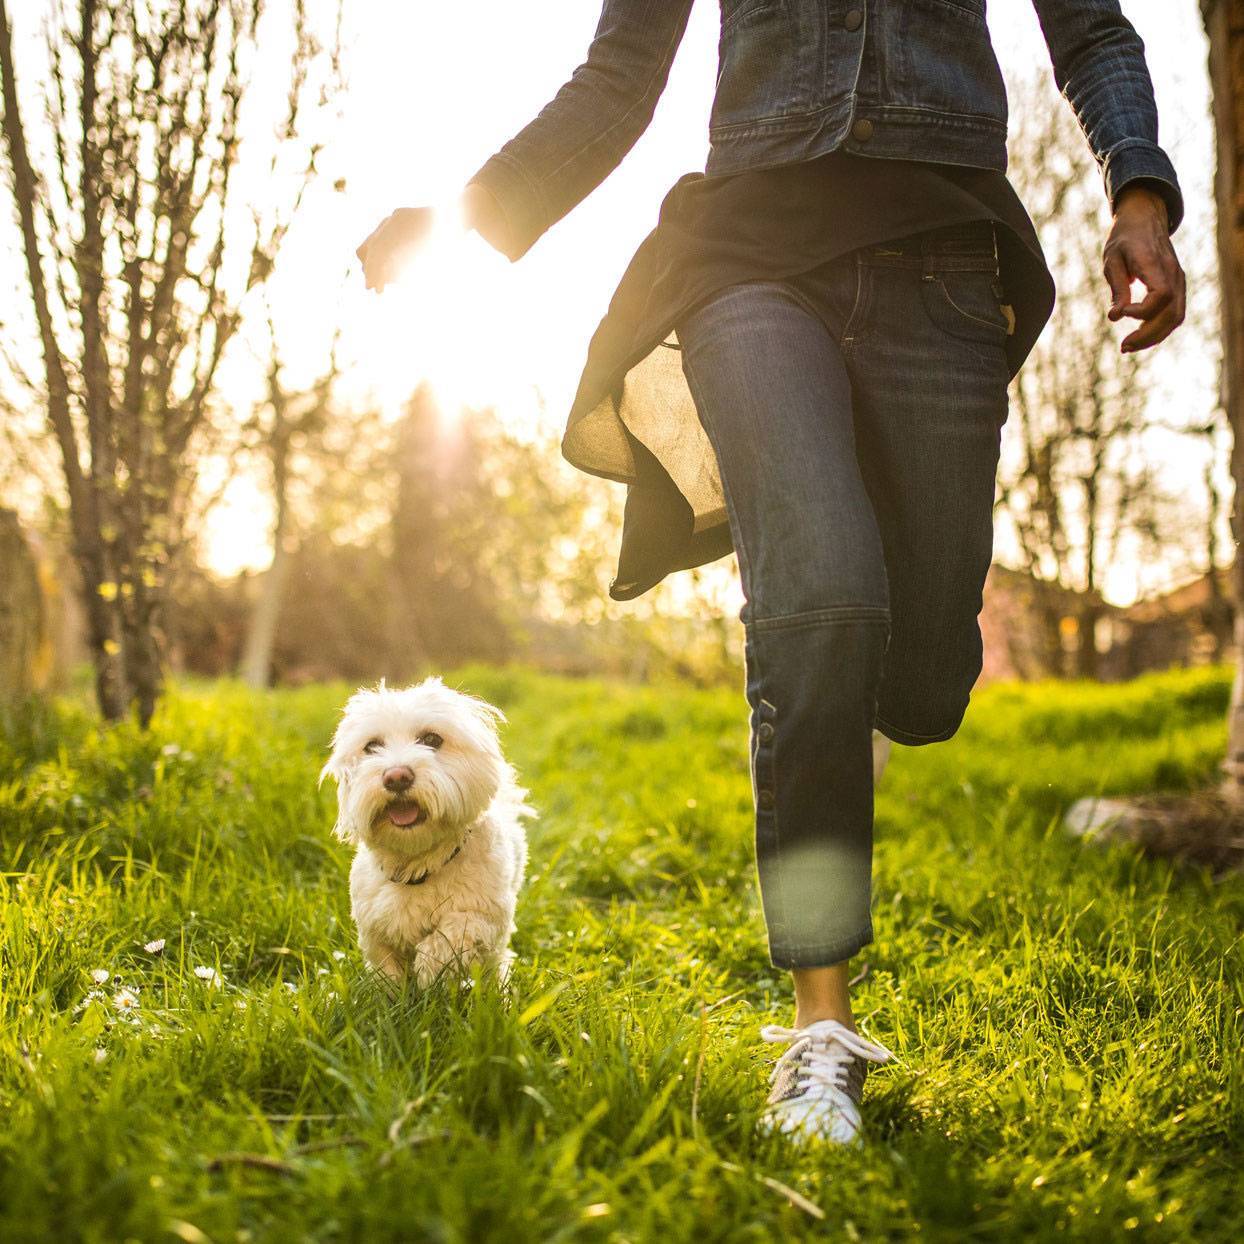 woman running in a sunny field with a dog